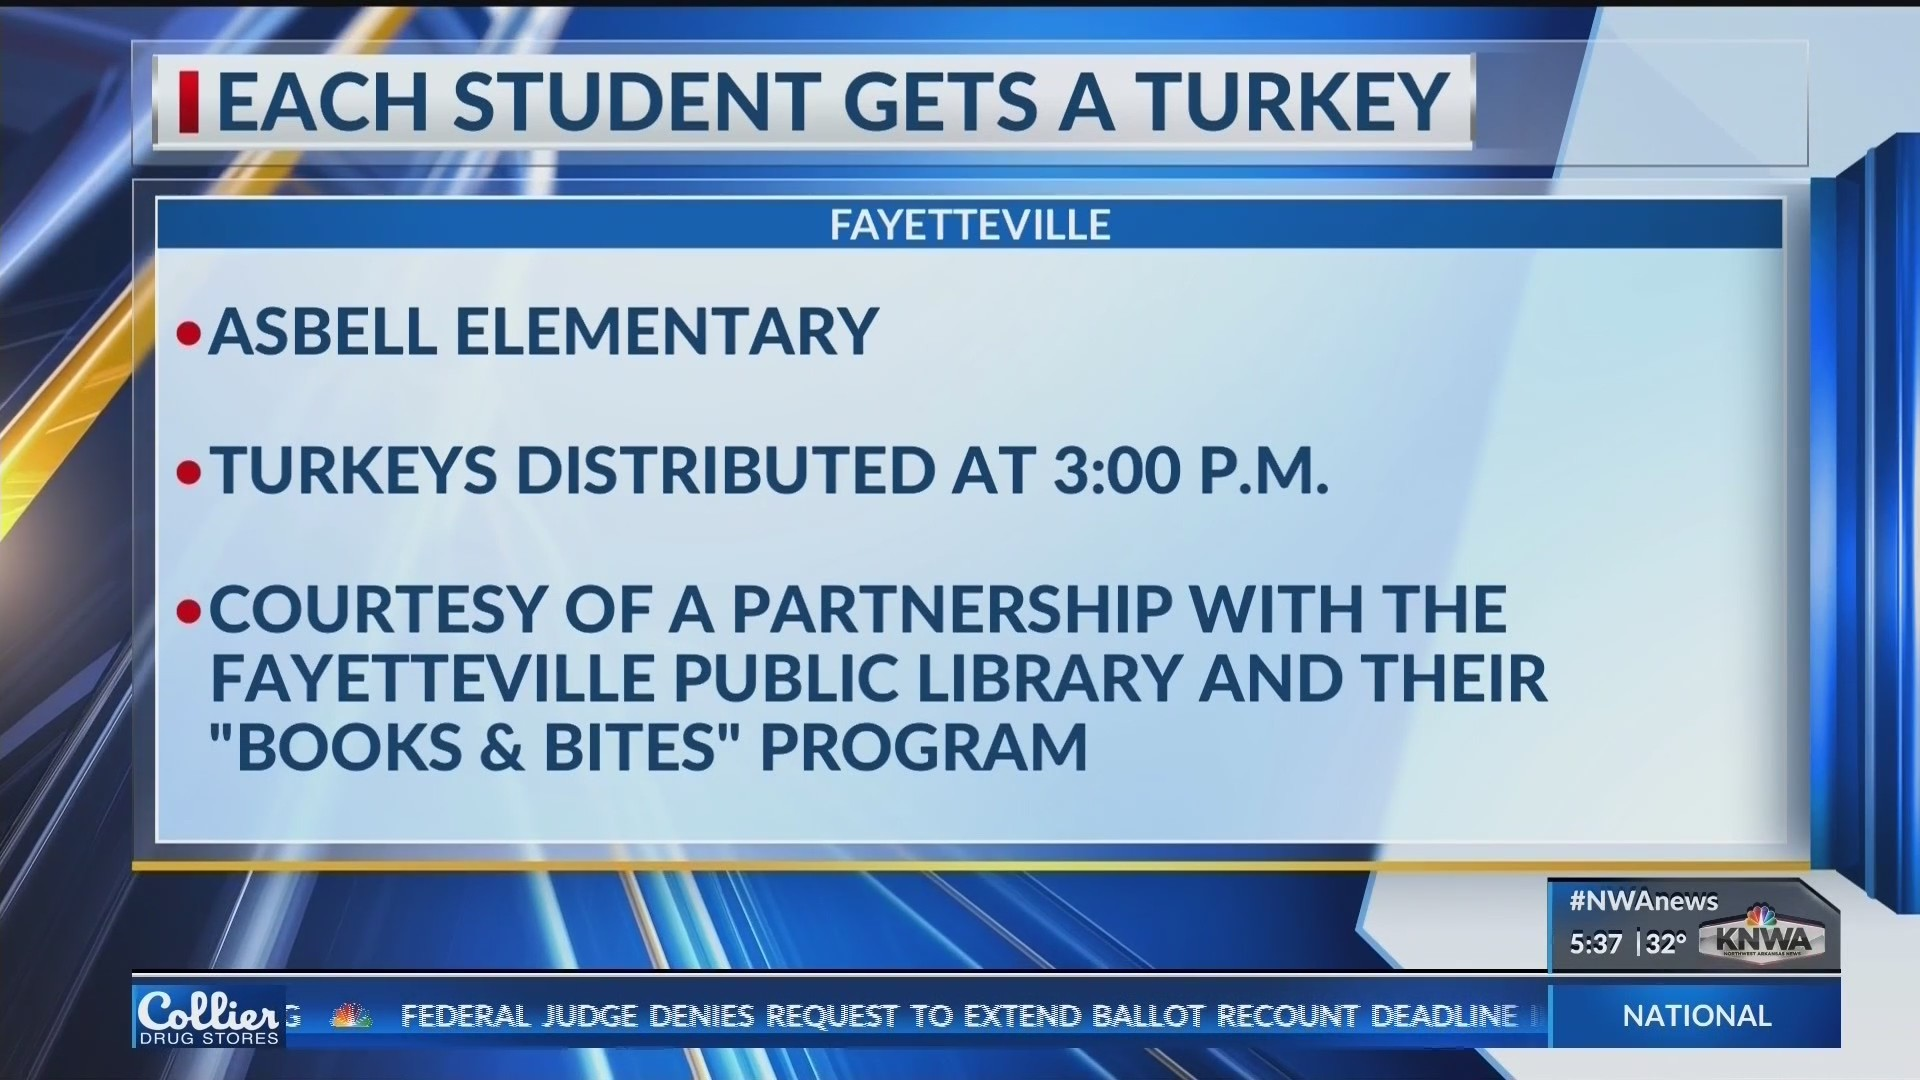 Asbell Elementary Students Receive Free Turkey